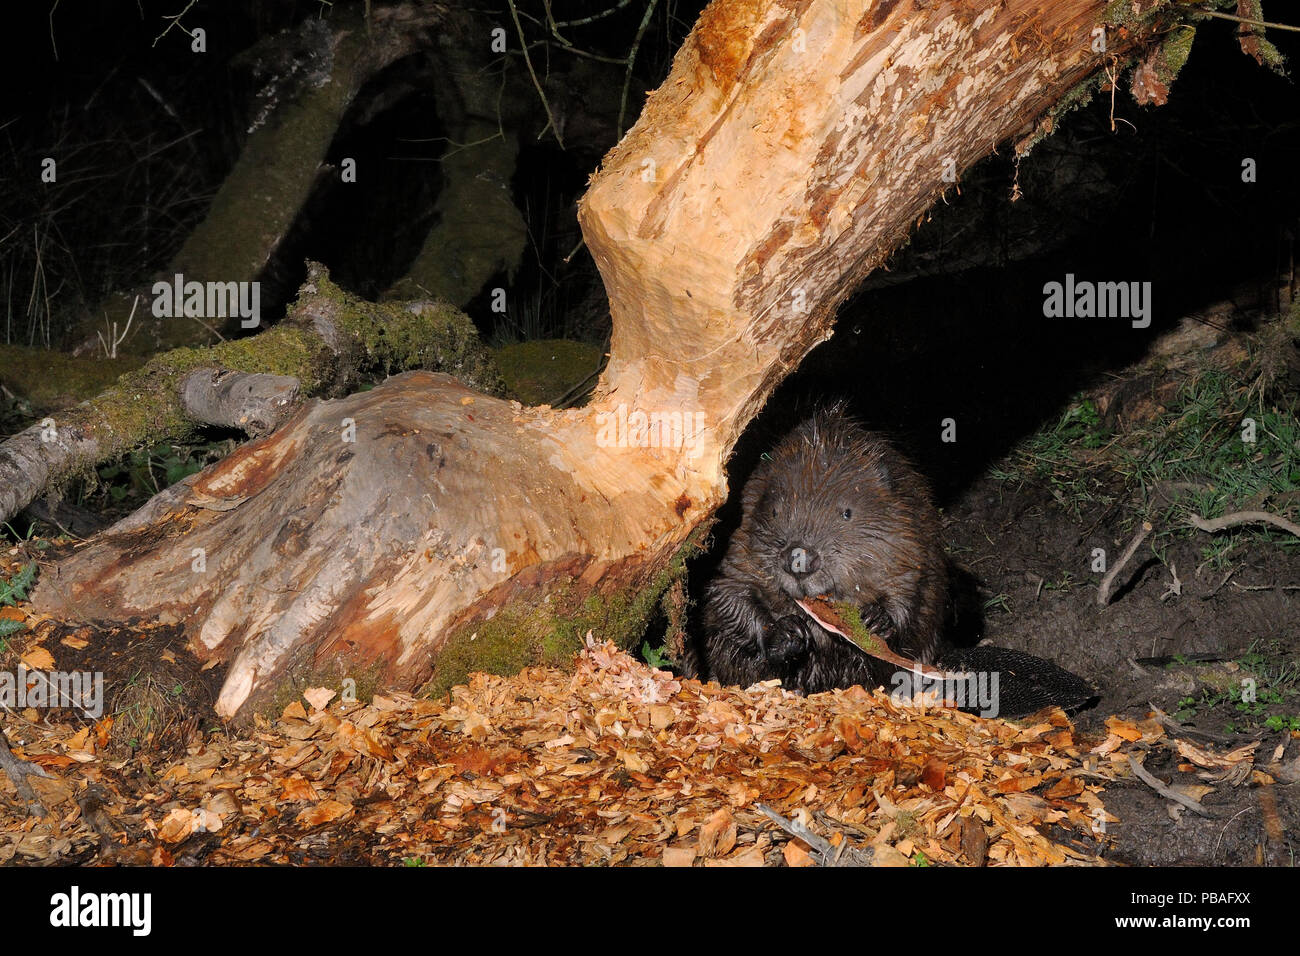 Eurasian beaver (Castor fiber) holding and chewing bark it has gnawed from the trunk of a Willow tree (Salix sp.) in a large woodland enclosure at night, Devon Beaver Project, run by Devon Wildlife Trust, Devon, UK, April. Taken by a remote camera trap. - Stock Image